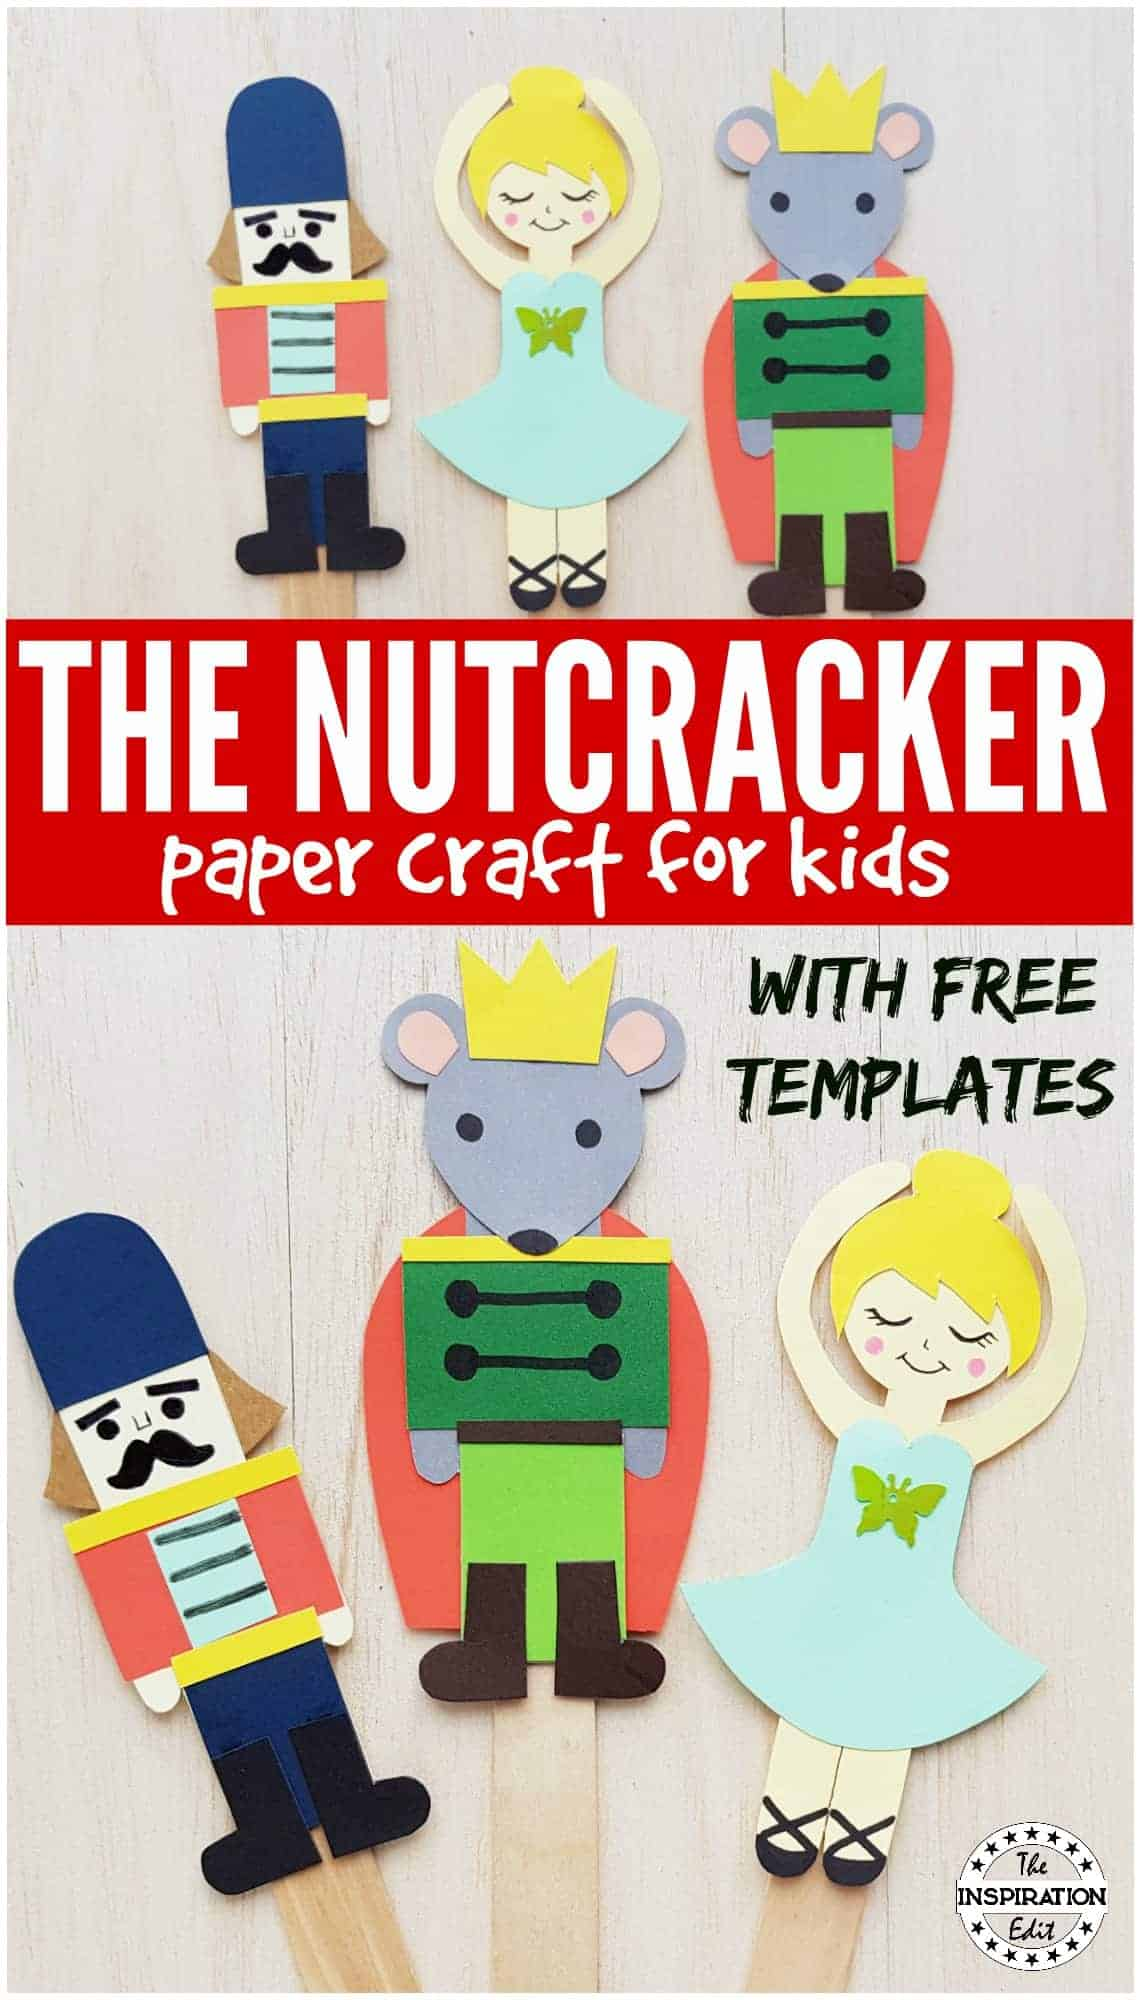 NUTCRACKER paper craft